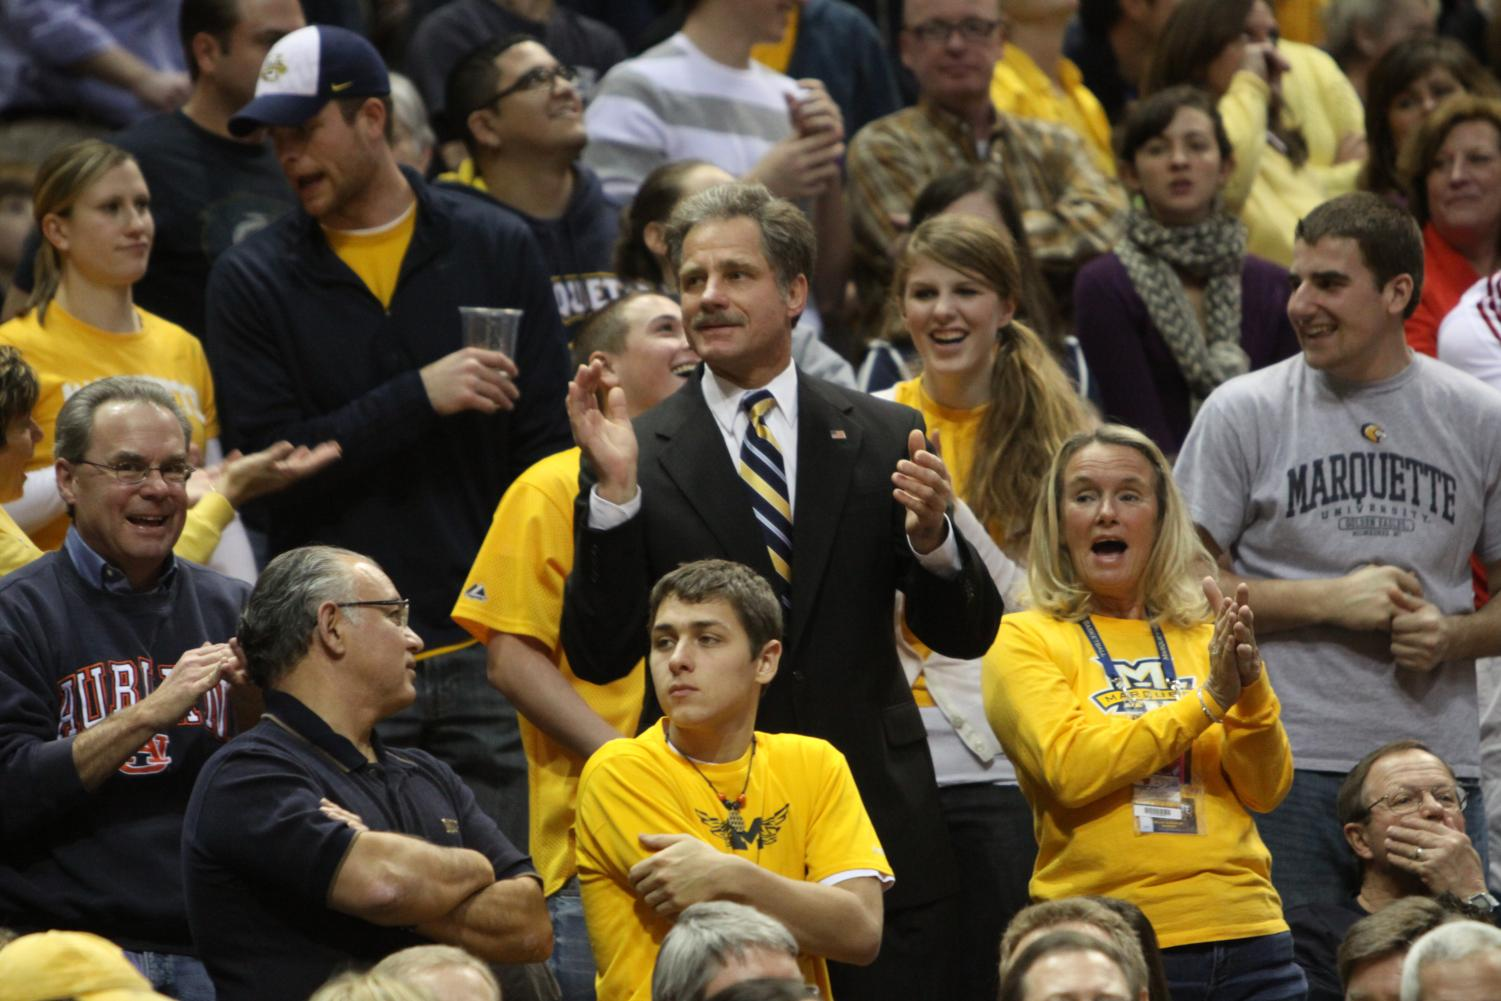 Marquette alumnus Rick Smith jumps at every game when the arena plays the song